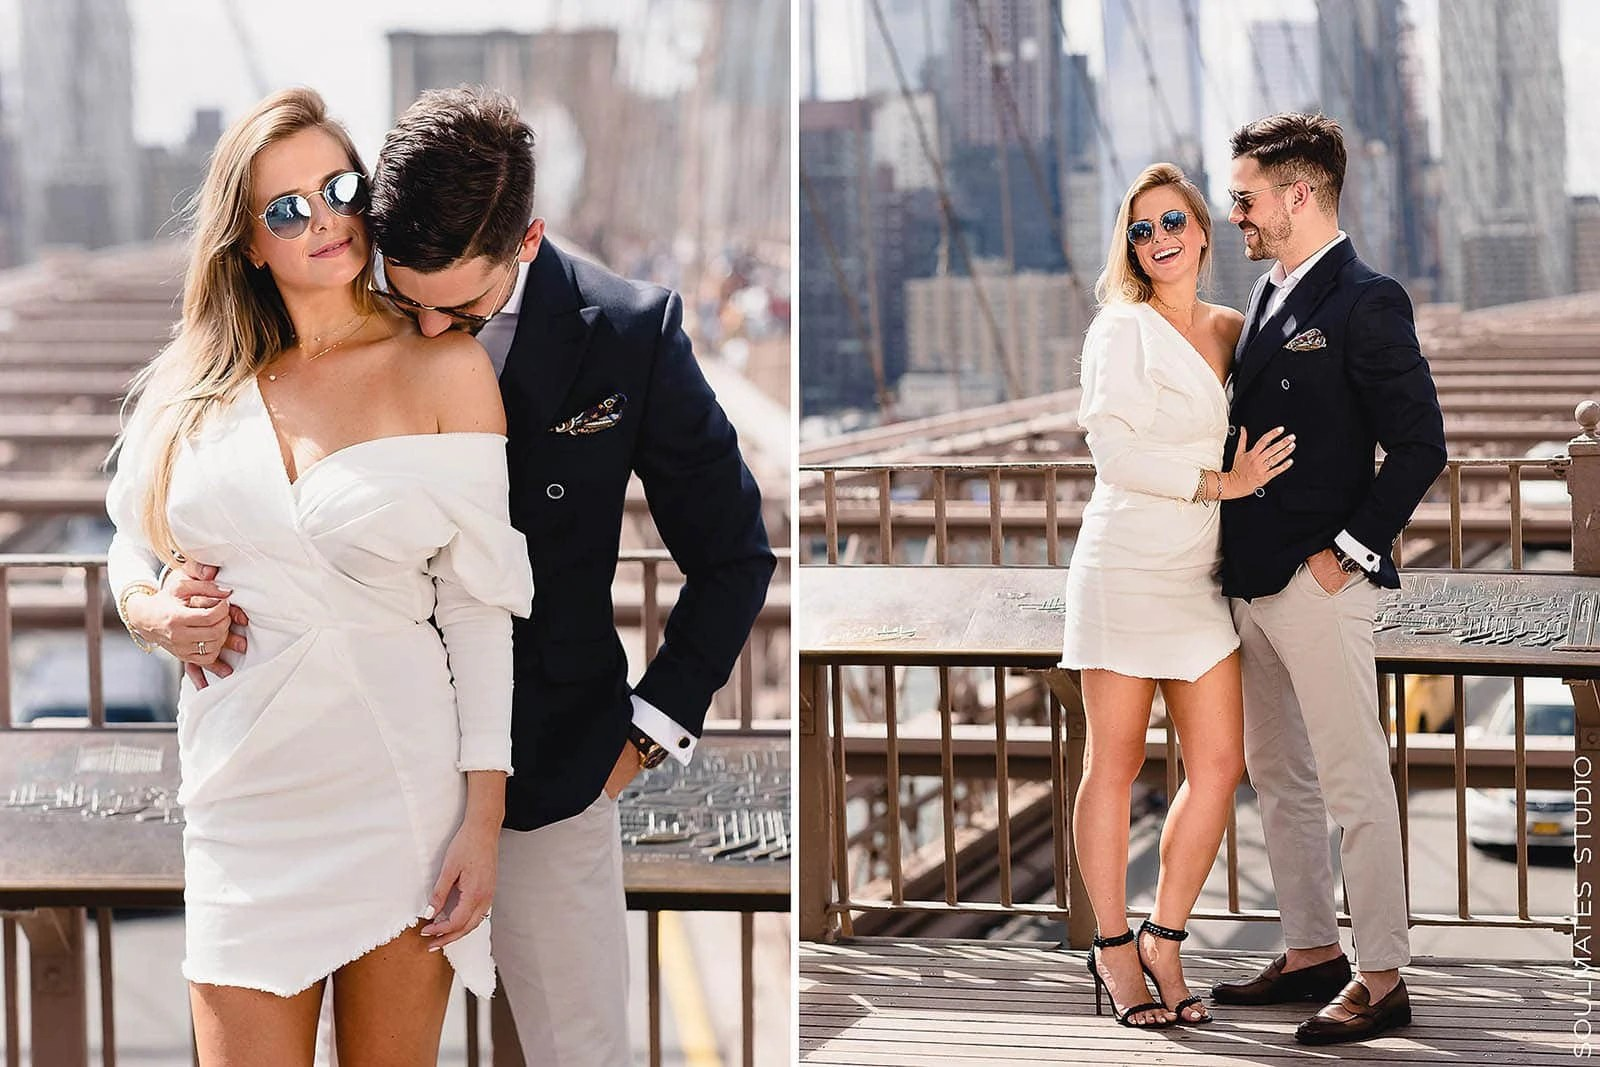 Brooklyn Bridge Iconic Engagement session Location